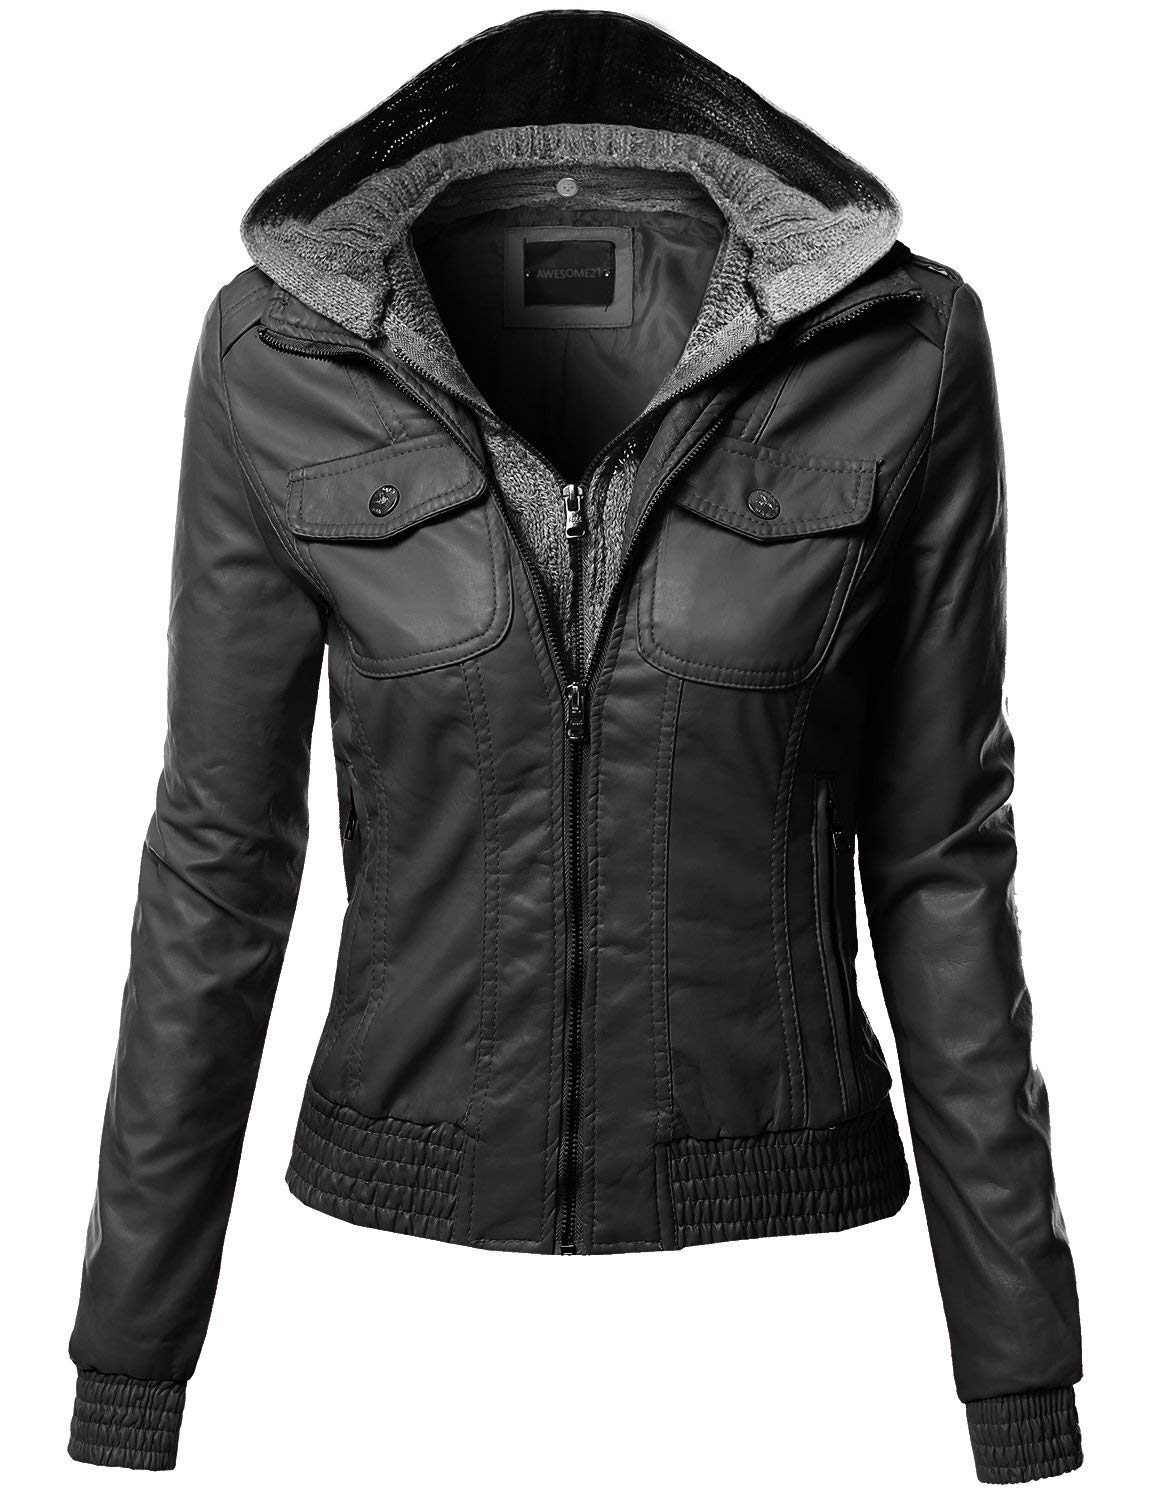 Awesome21 Casual Zipper Closure Stitch Detailed Moto Hoodie Jacket Black Size M